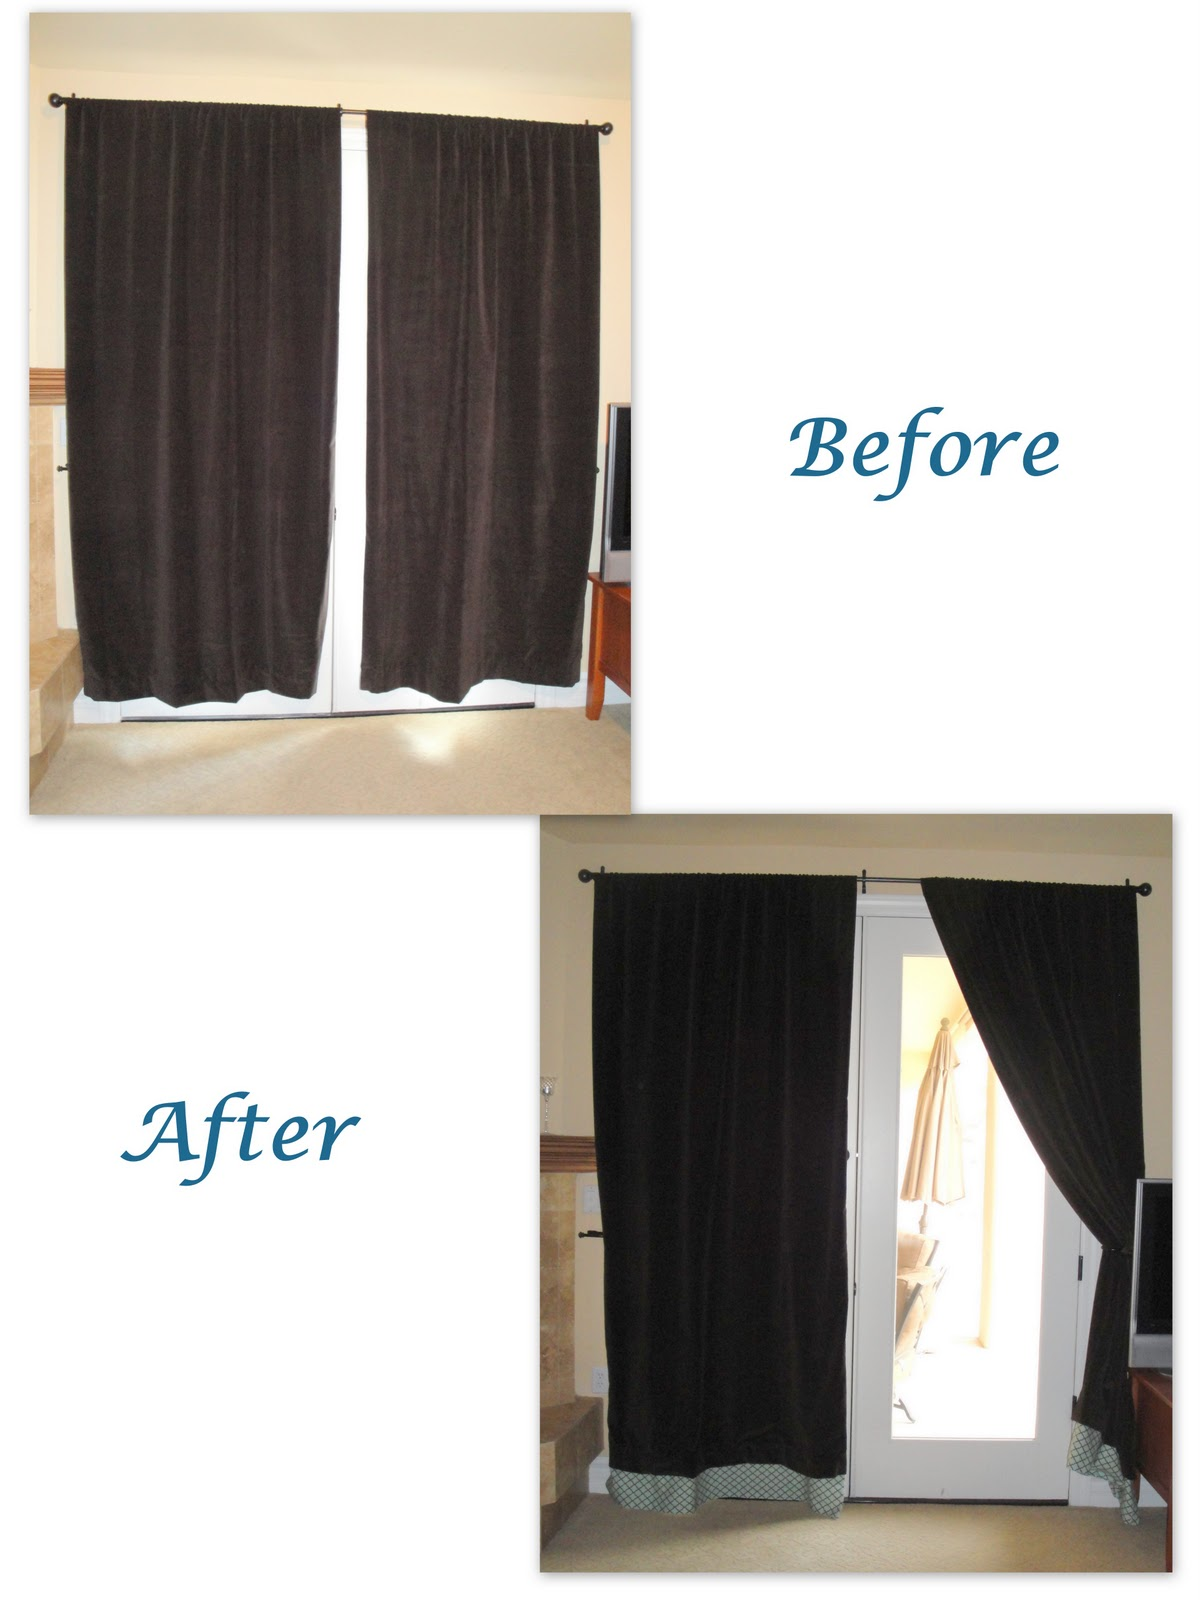 Making the Moment Matter: Adding length to curtains with Hem Tape